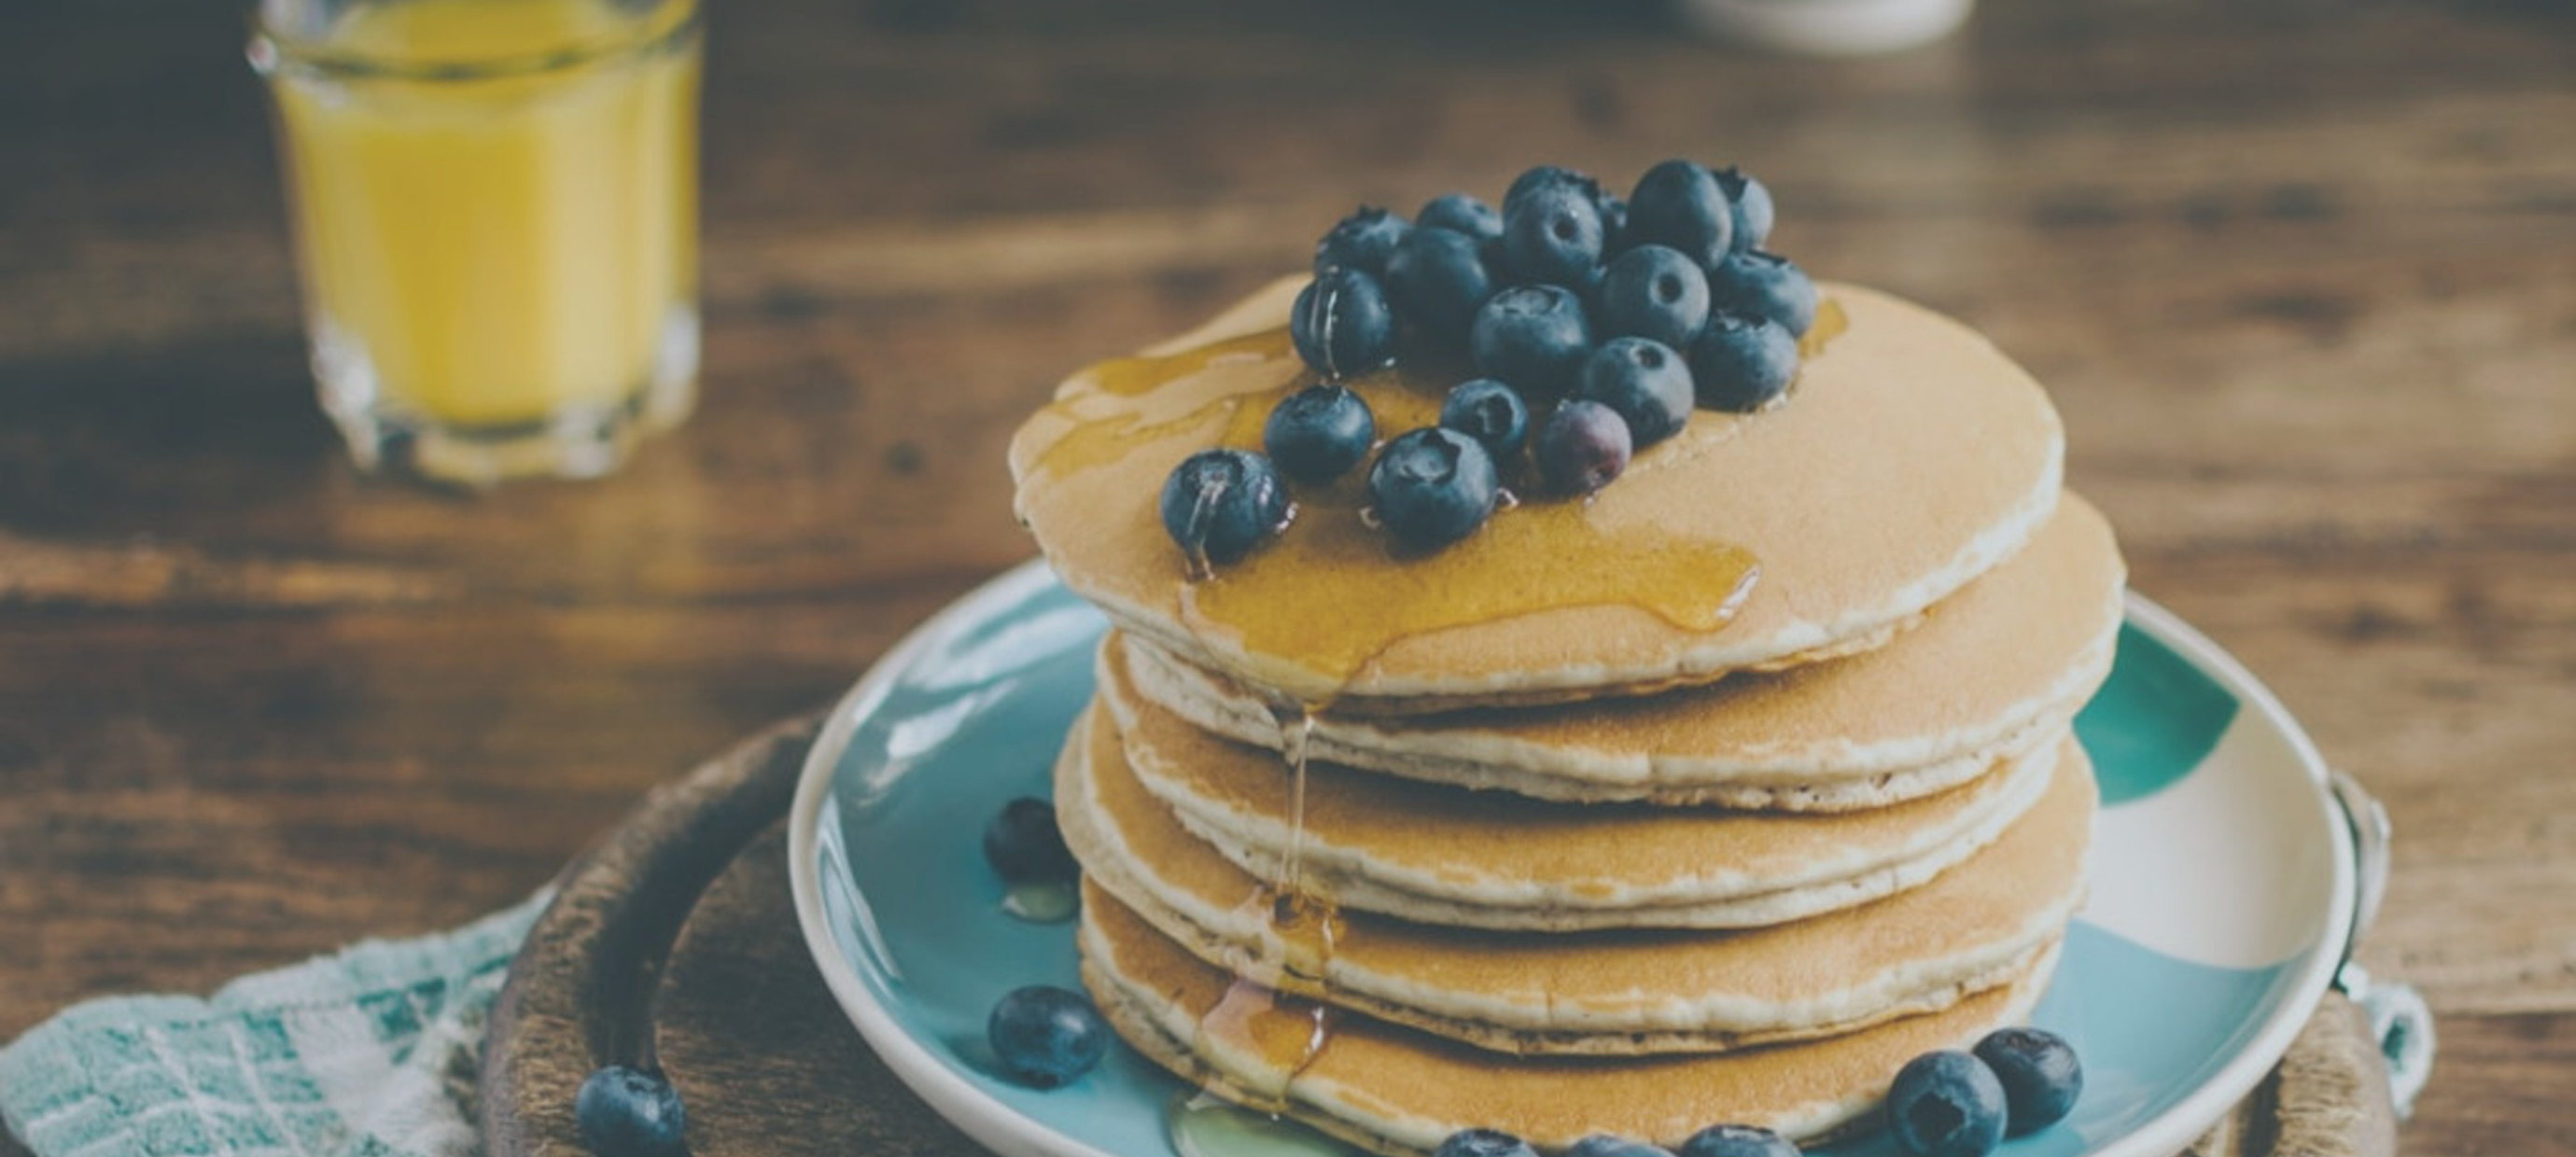 Recharge your batteries with Paul Coll's power pancakes